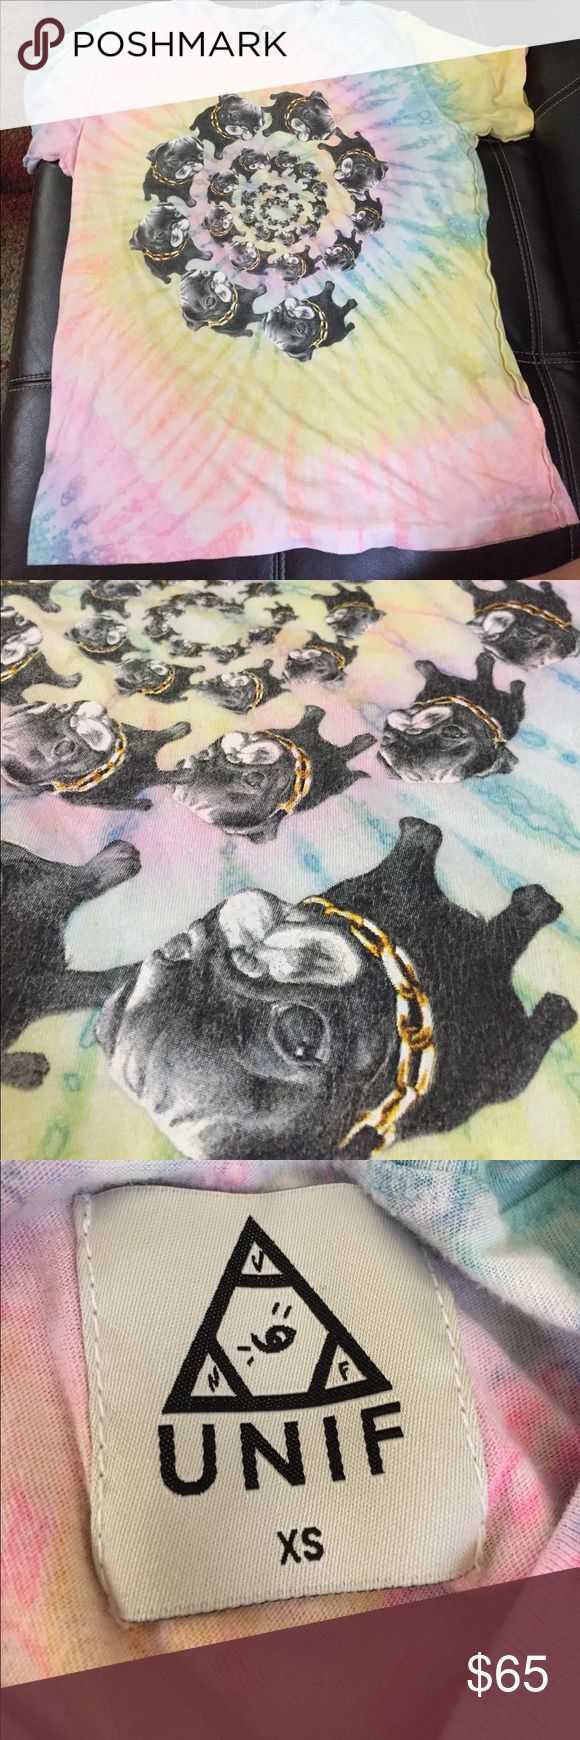 Unif Pug Tie Dye Shirt Willing to trade for a XS/S Pug Life shirt or just sell as price listed! :) Good condition! Love this tee. Super soft material. UNIF Tops Tees - Short Sleeve